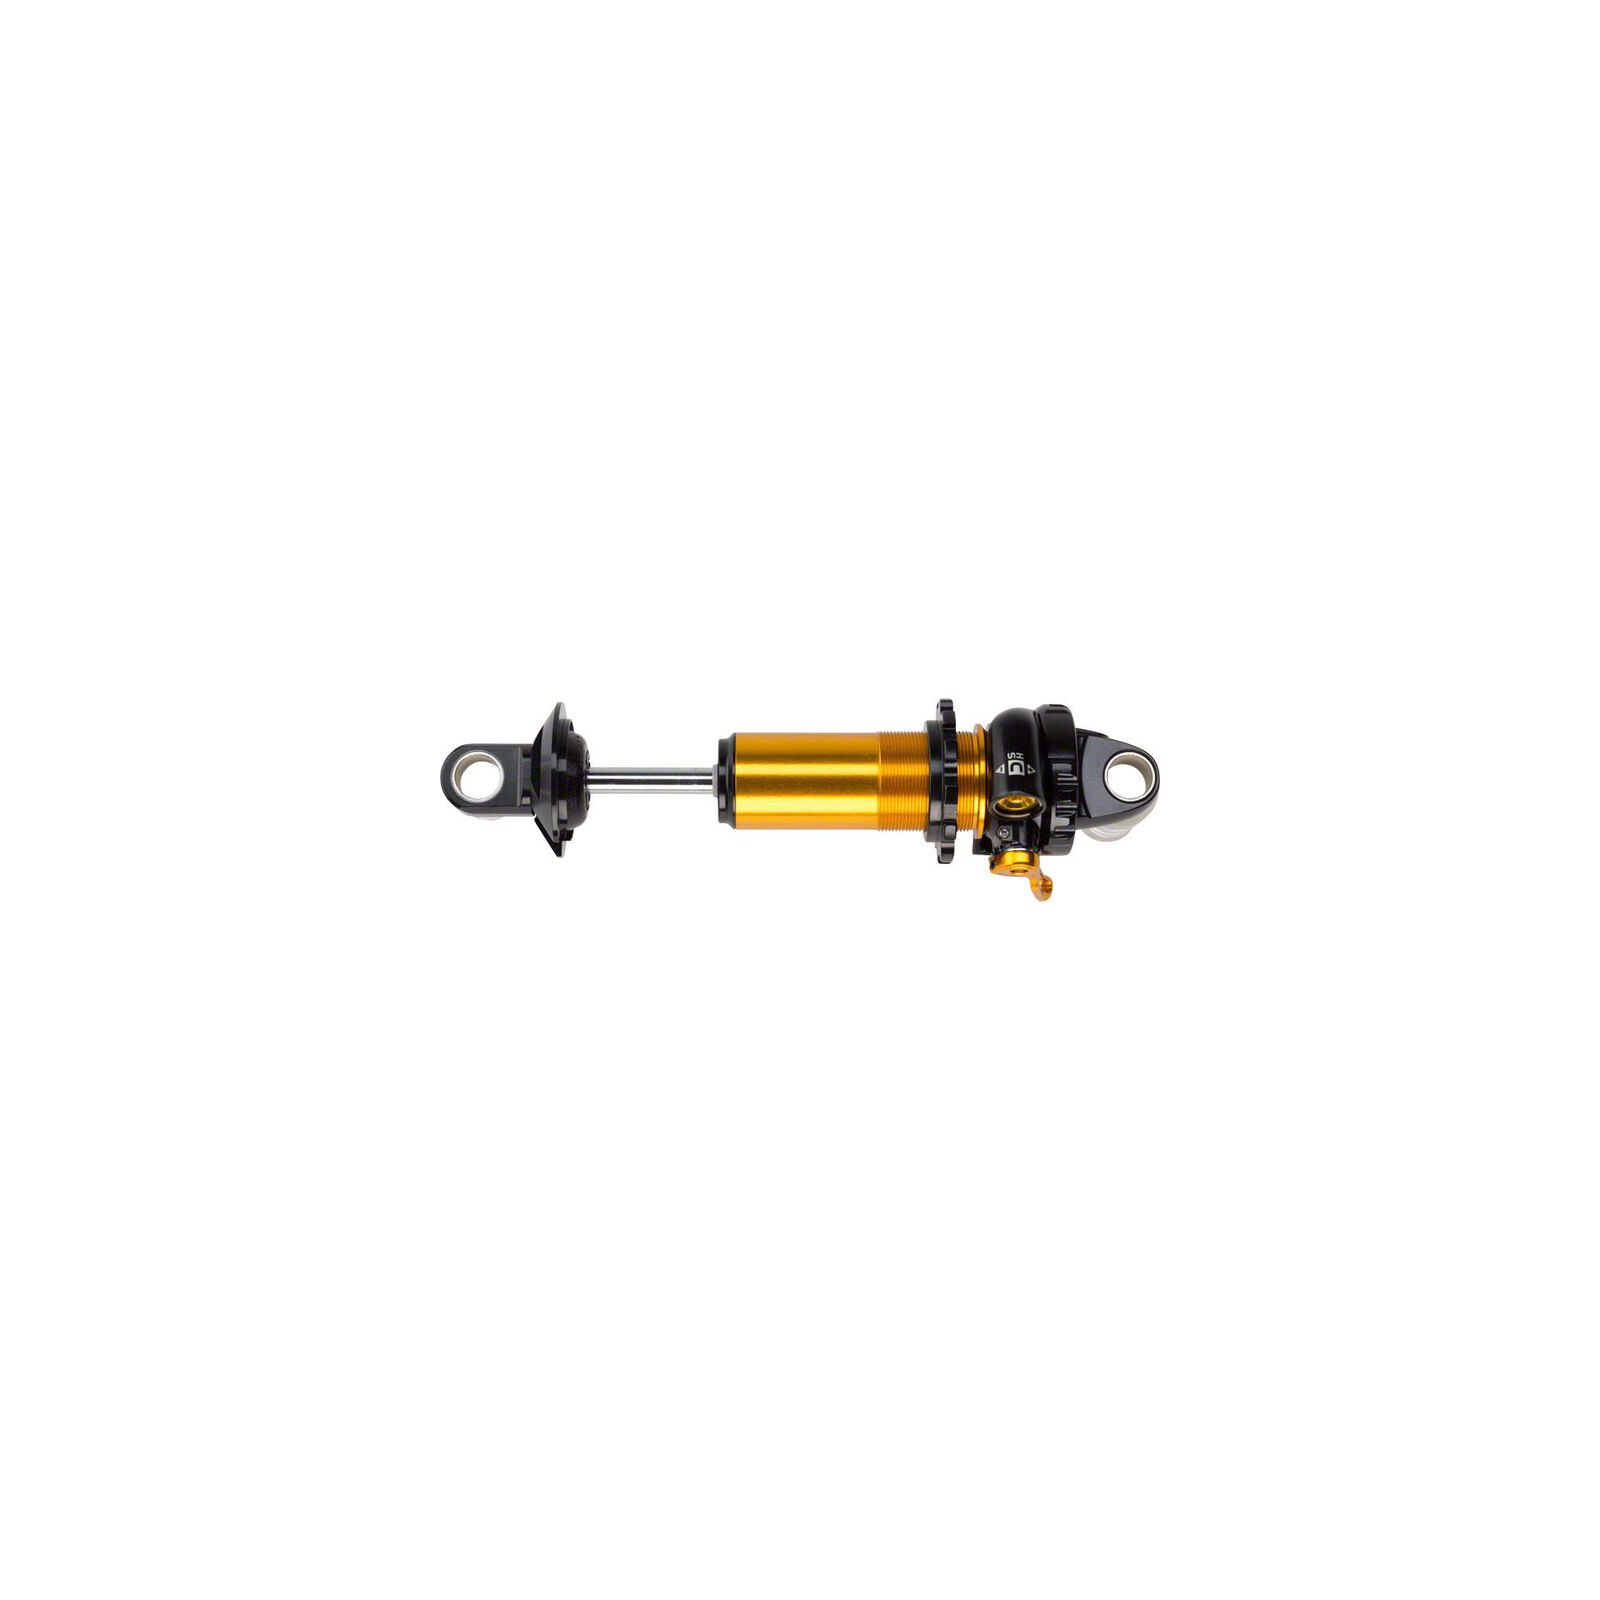 Cane Creek Double Barrel Coil Inline Rear Shock, 190x50mm (7.5 x 2.0 )